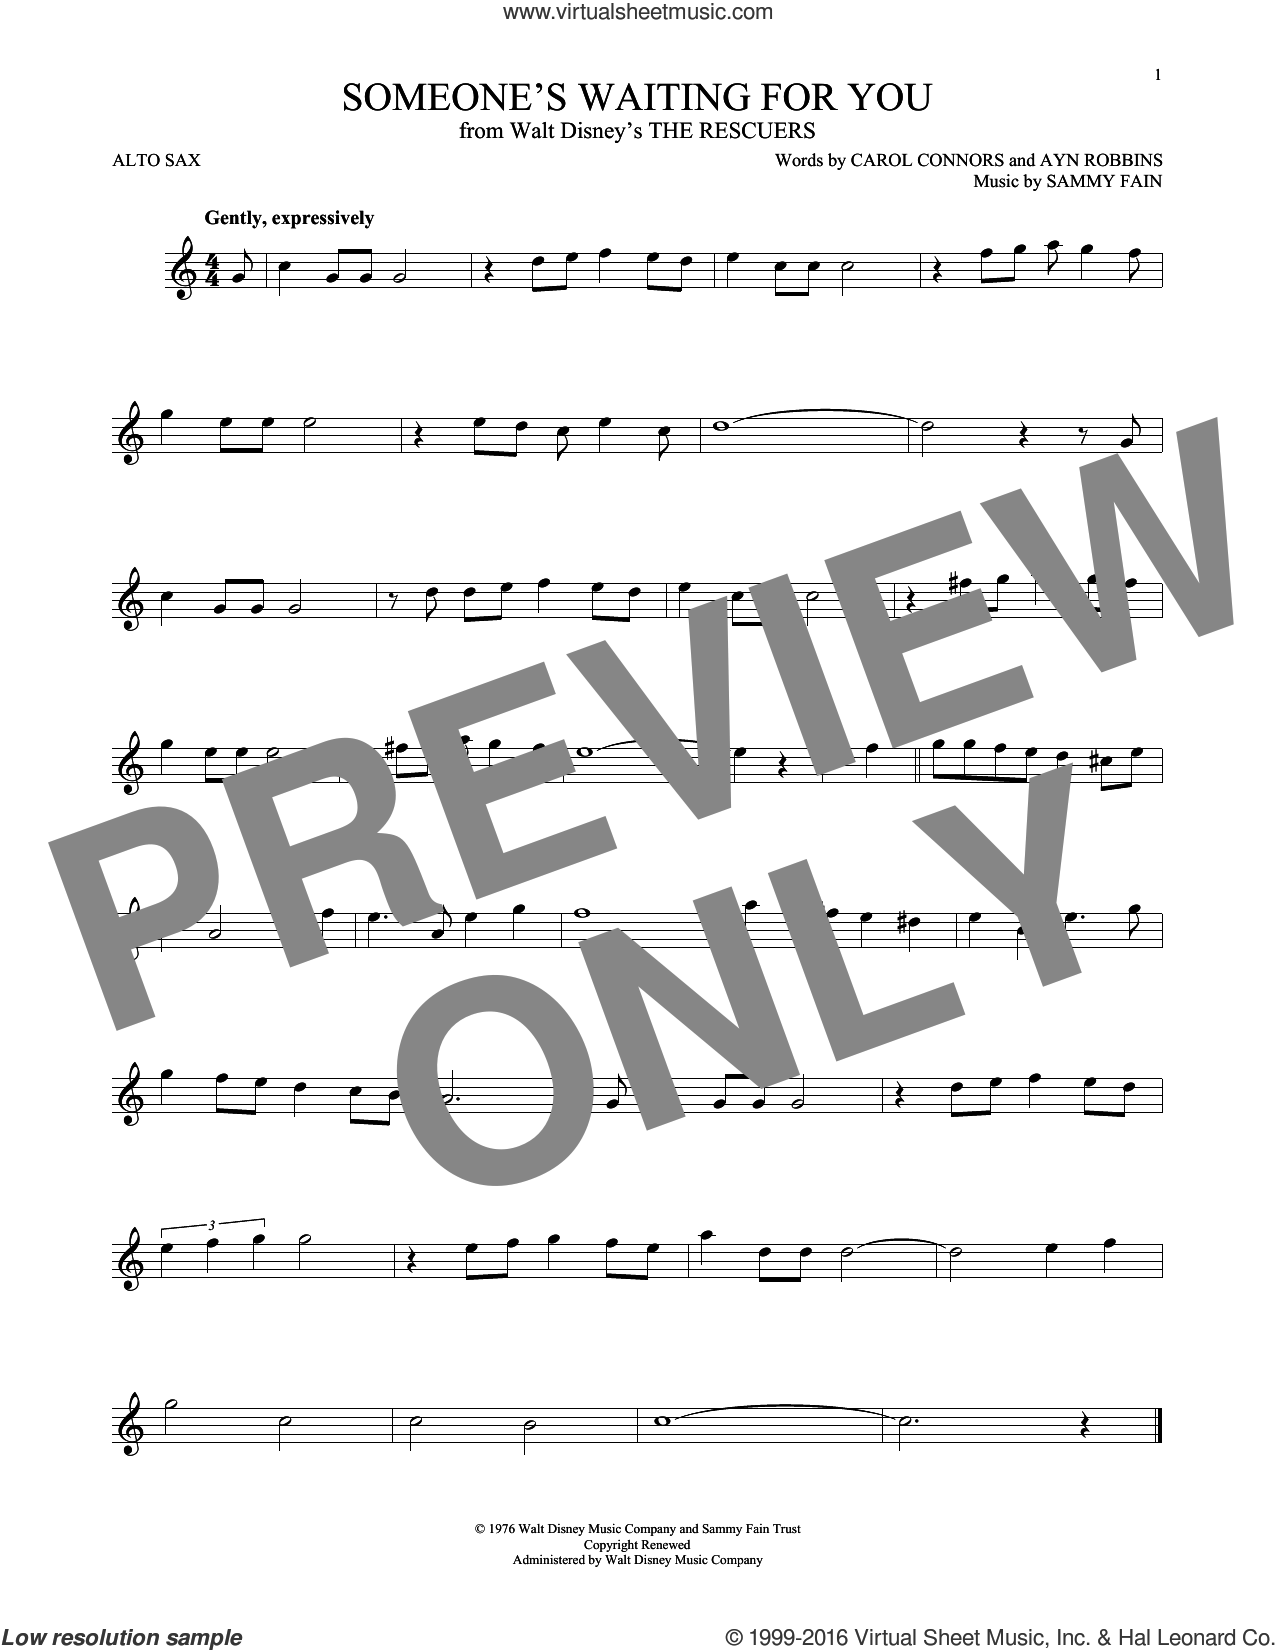 Someone's Waiting For You sheet music for alto saxophone solo by Sammy Fain, Ayn Robbins and Carol Connors, intermediate. Score Image Preview.